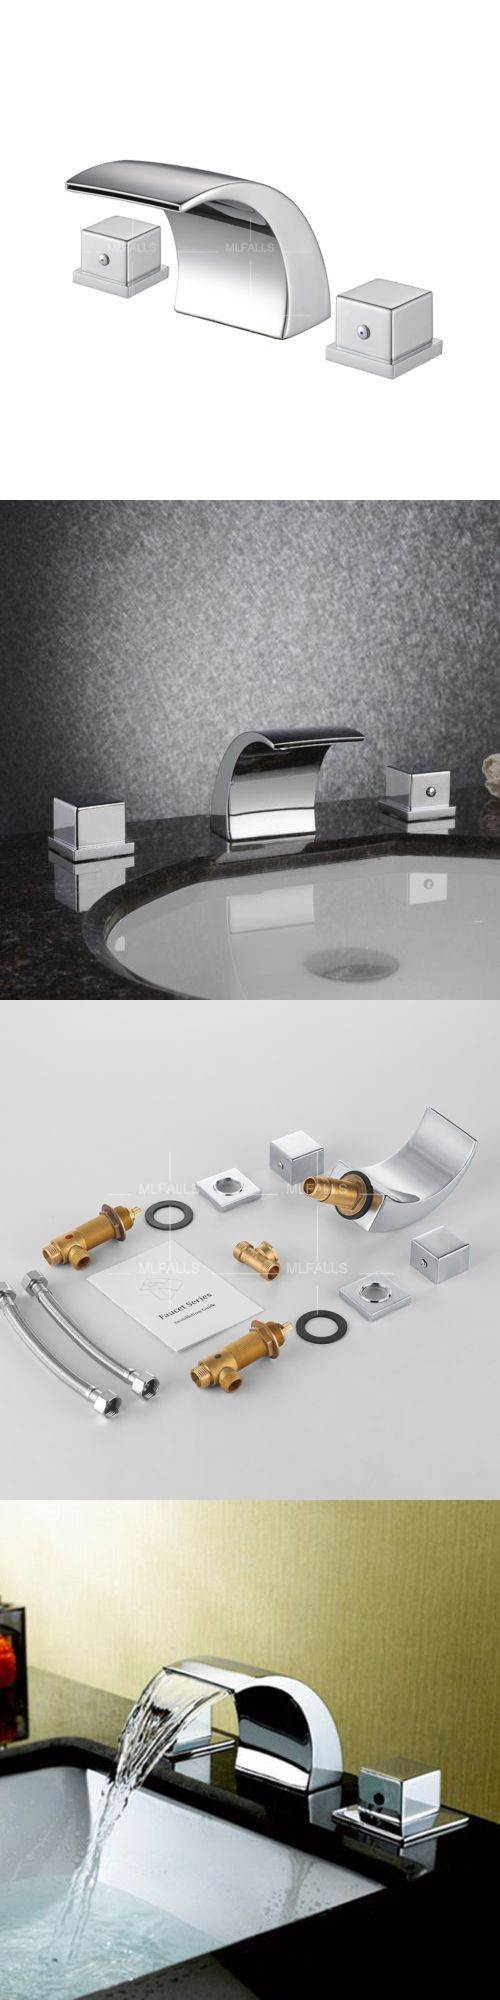 Bathroom sink faucet one hole double handle basin mixer tap ebay - Faucets 42024 Waterfall Bathroom Basin Sink Faucet Chrome 2 Handle 3 Hole Widespread